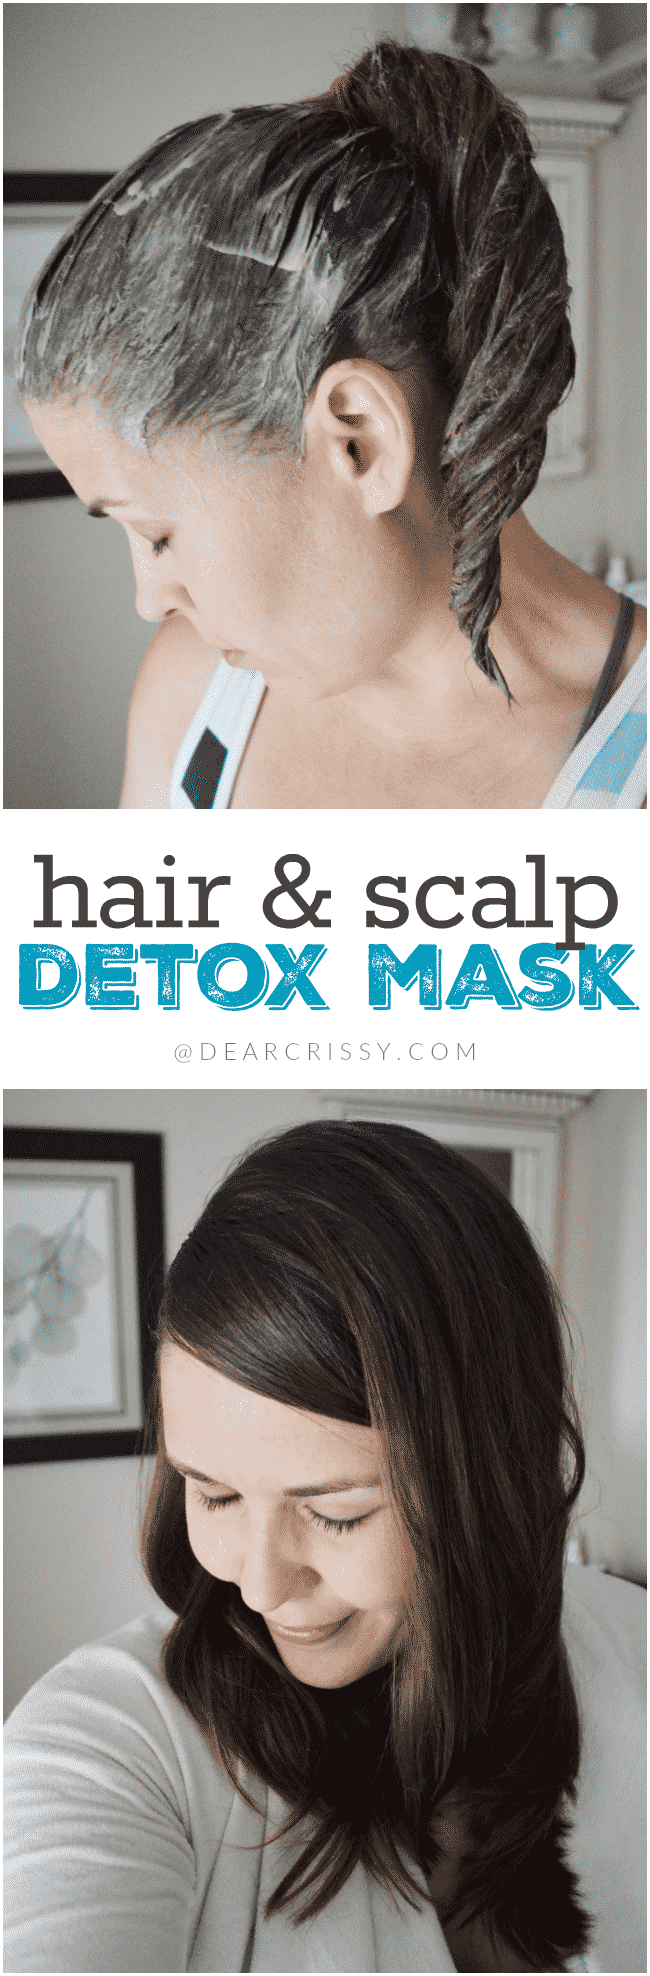 Hair & Scalp Detox Mask - This easy DIY clay detox mask will detoxify and purify your hair and scalp, leaving it soft, smooth and ultra-clean.